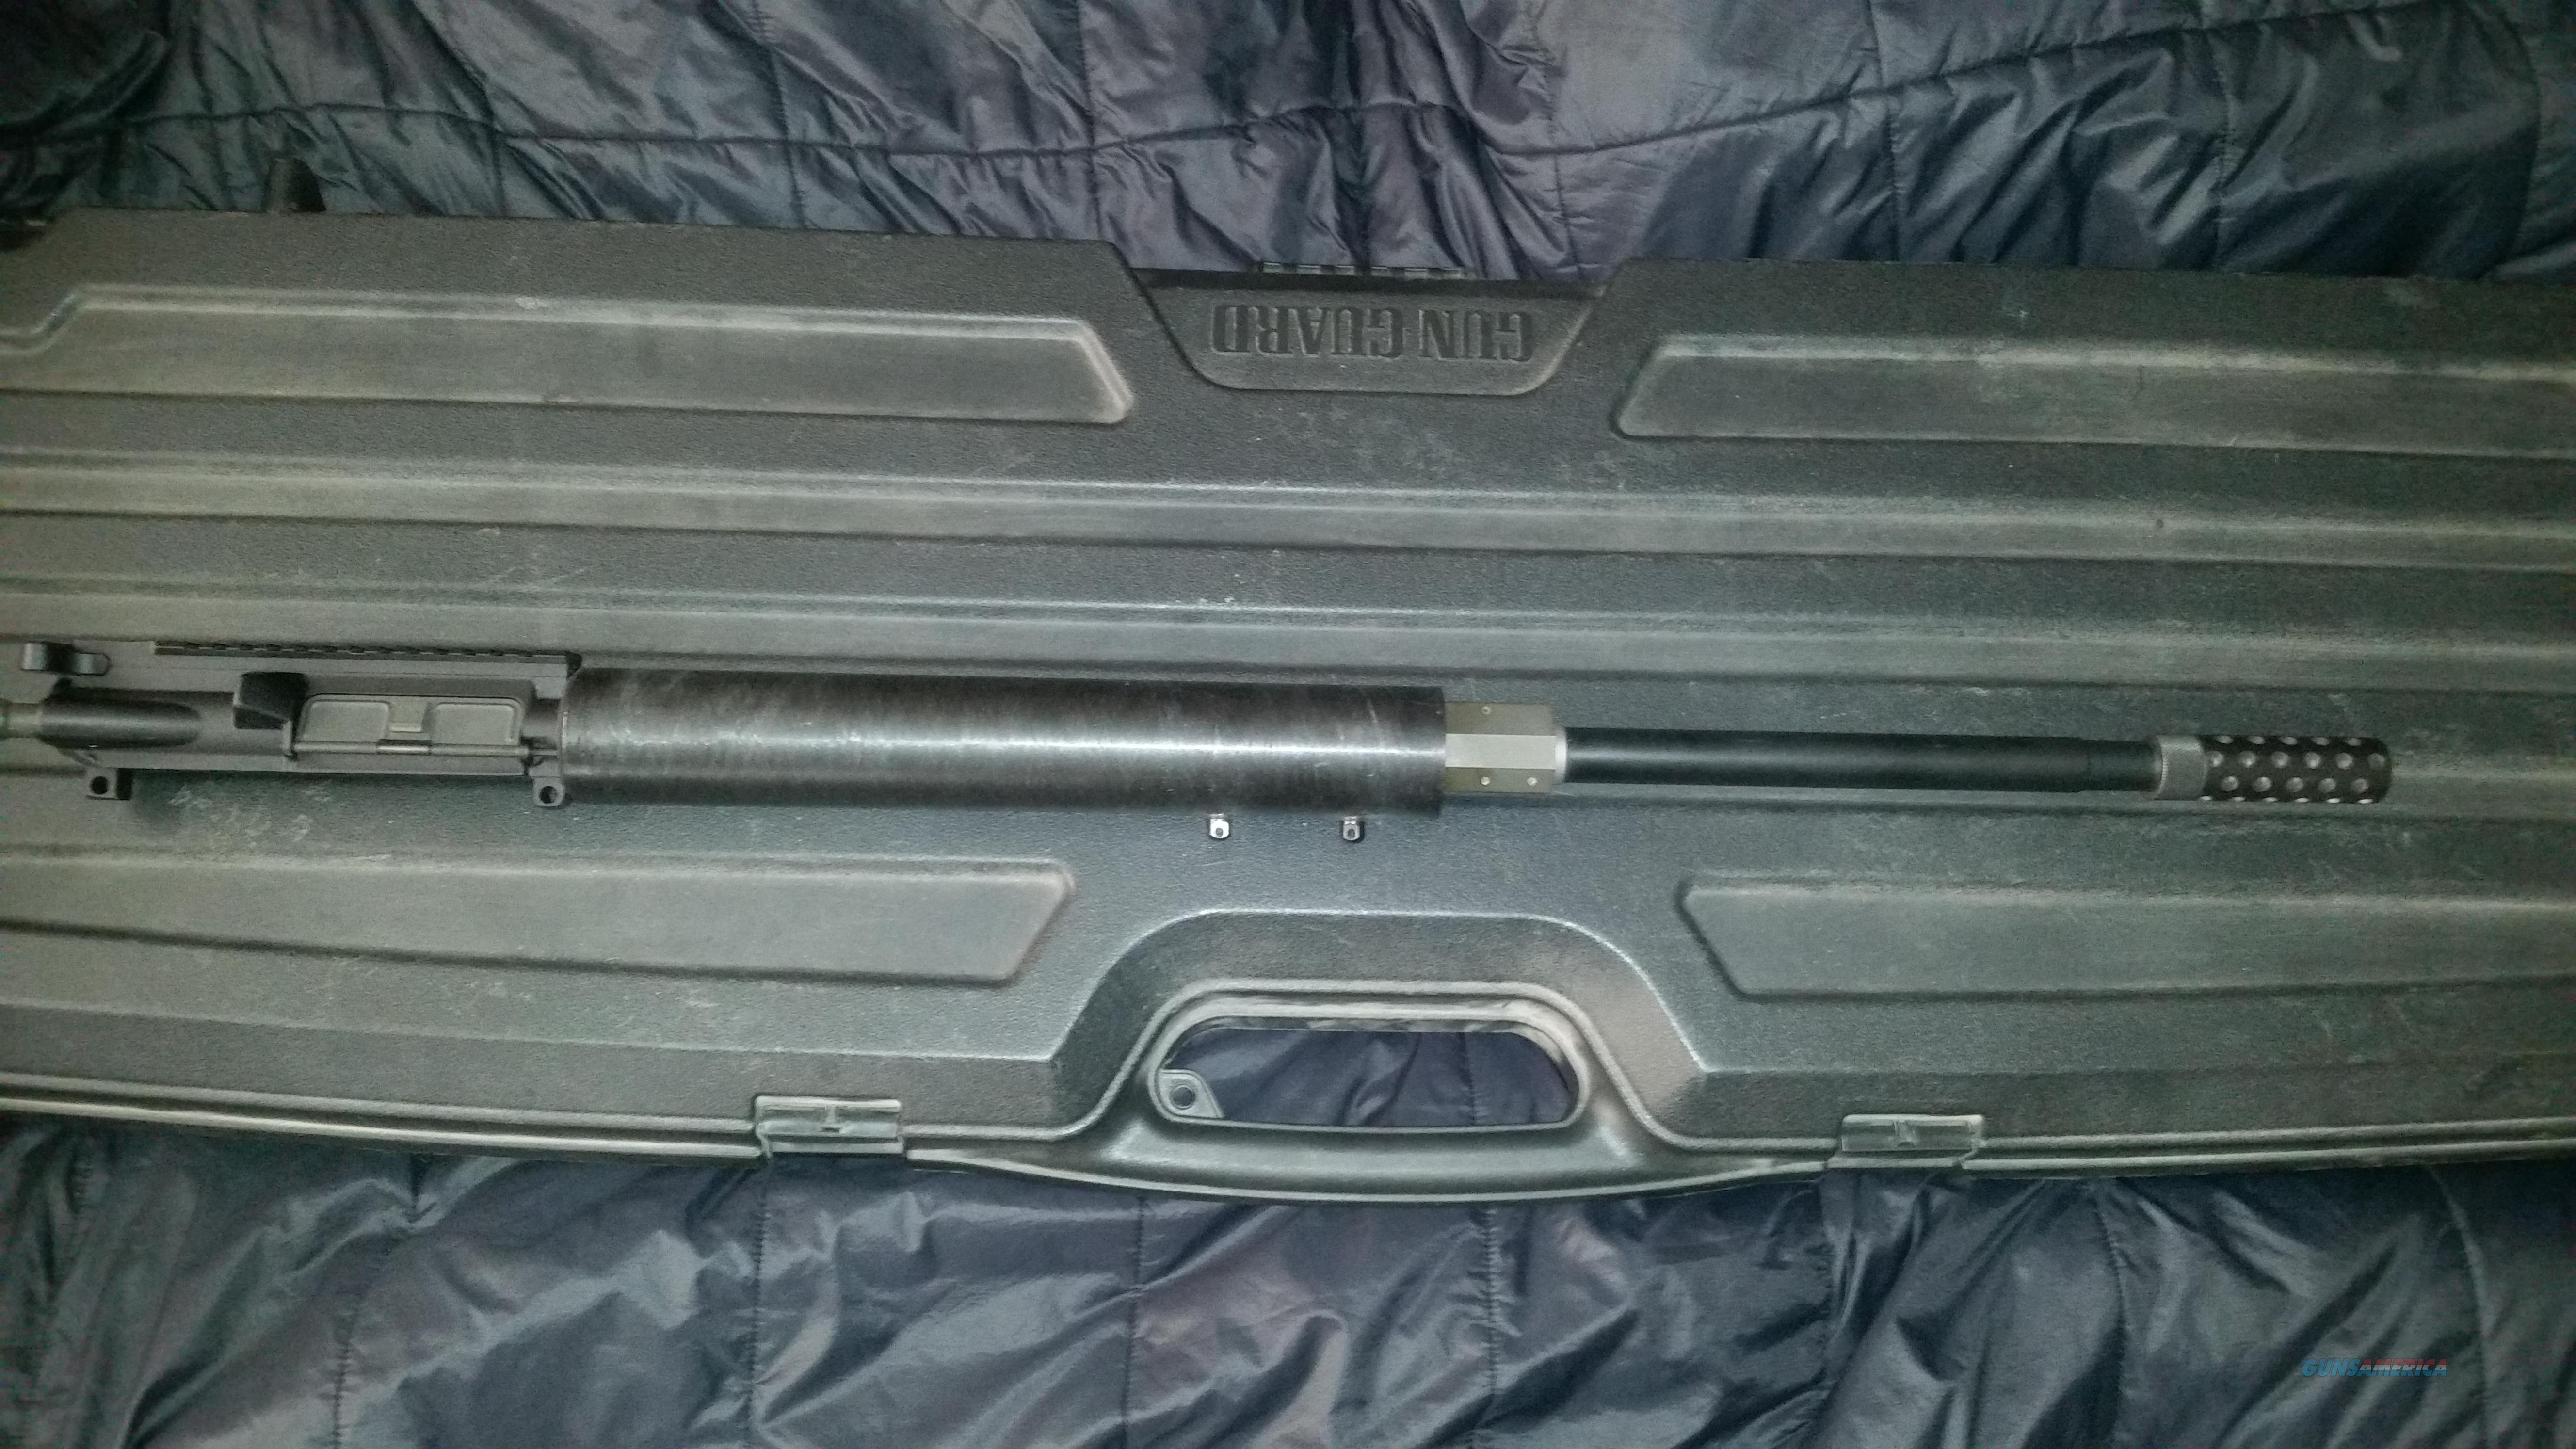 "6.5 Grendel 24"" Overwatch Complete Upper Assembly W/WCI Muzzle Brake   Non-Guns > Gun Parts > M16-AR15 > Upper Only"